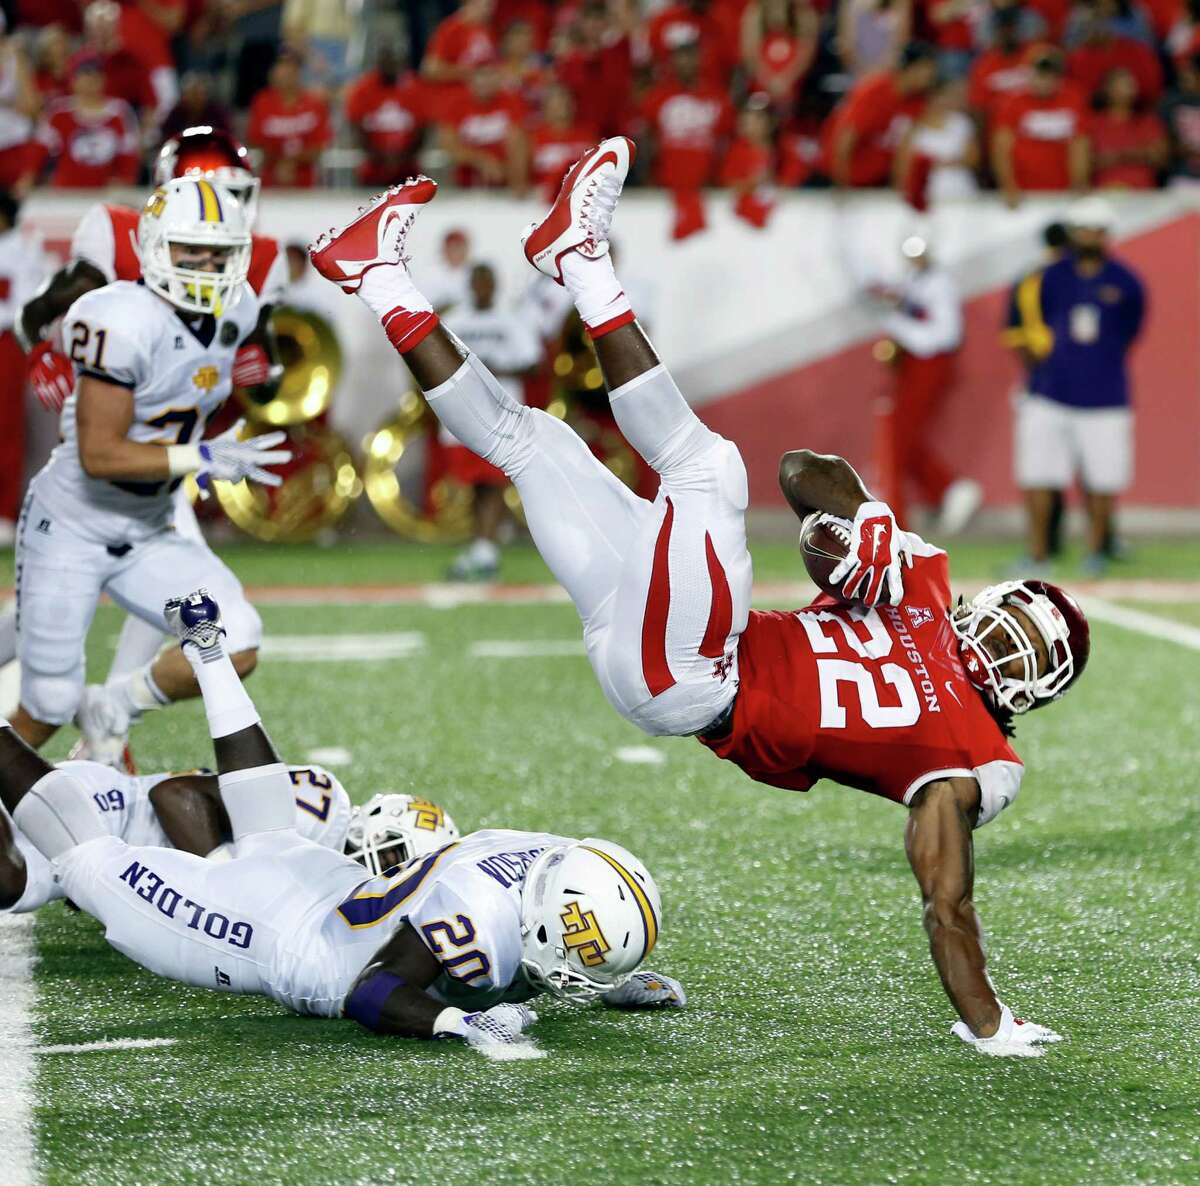 Houston's Ryan Jackson lands after a short gain against Tennessee Tech during the first half of an NCAA college football game Saturday, Sept. 5, 2015, in Houston. (Craig H. Hartley/Houston Chronicle via AP)